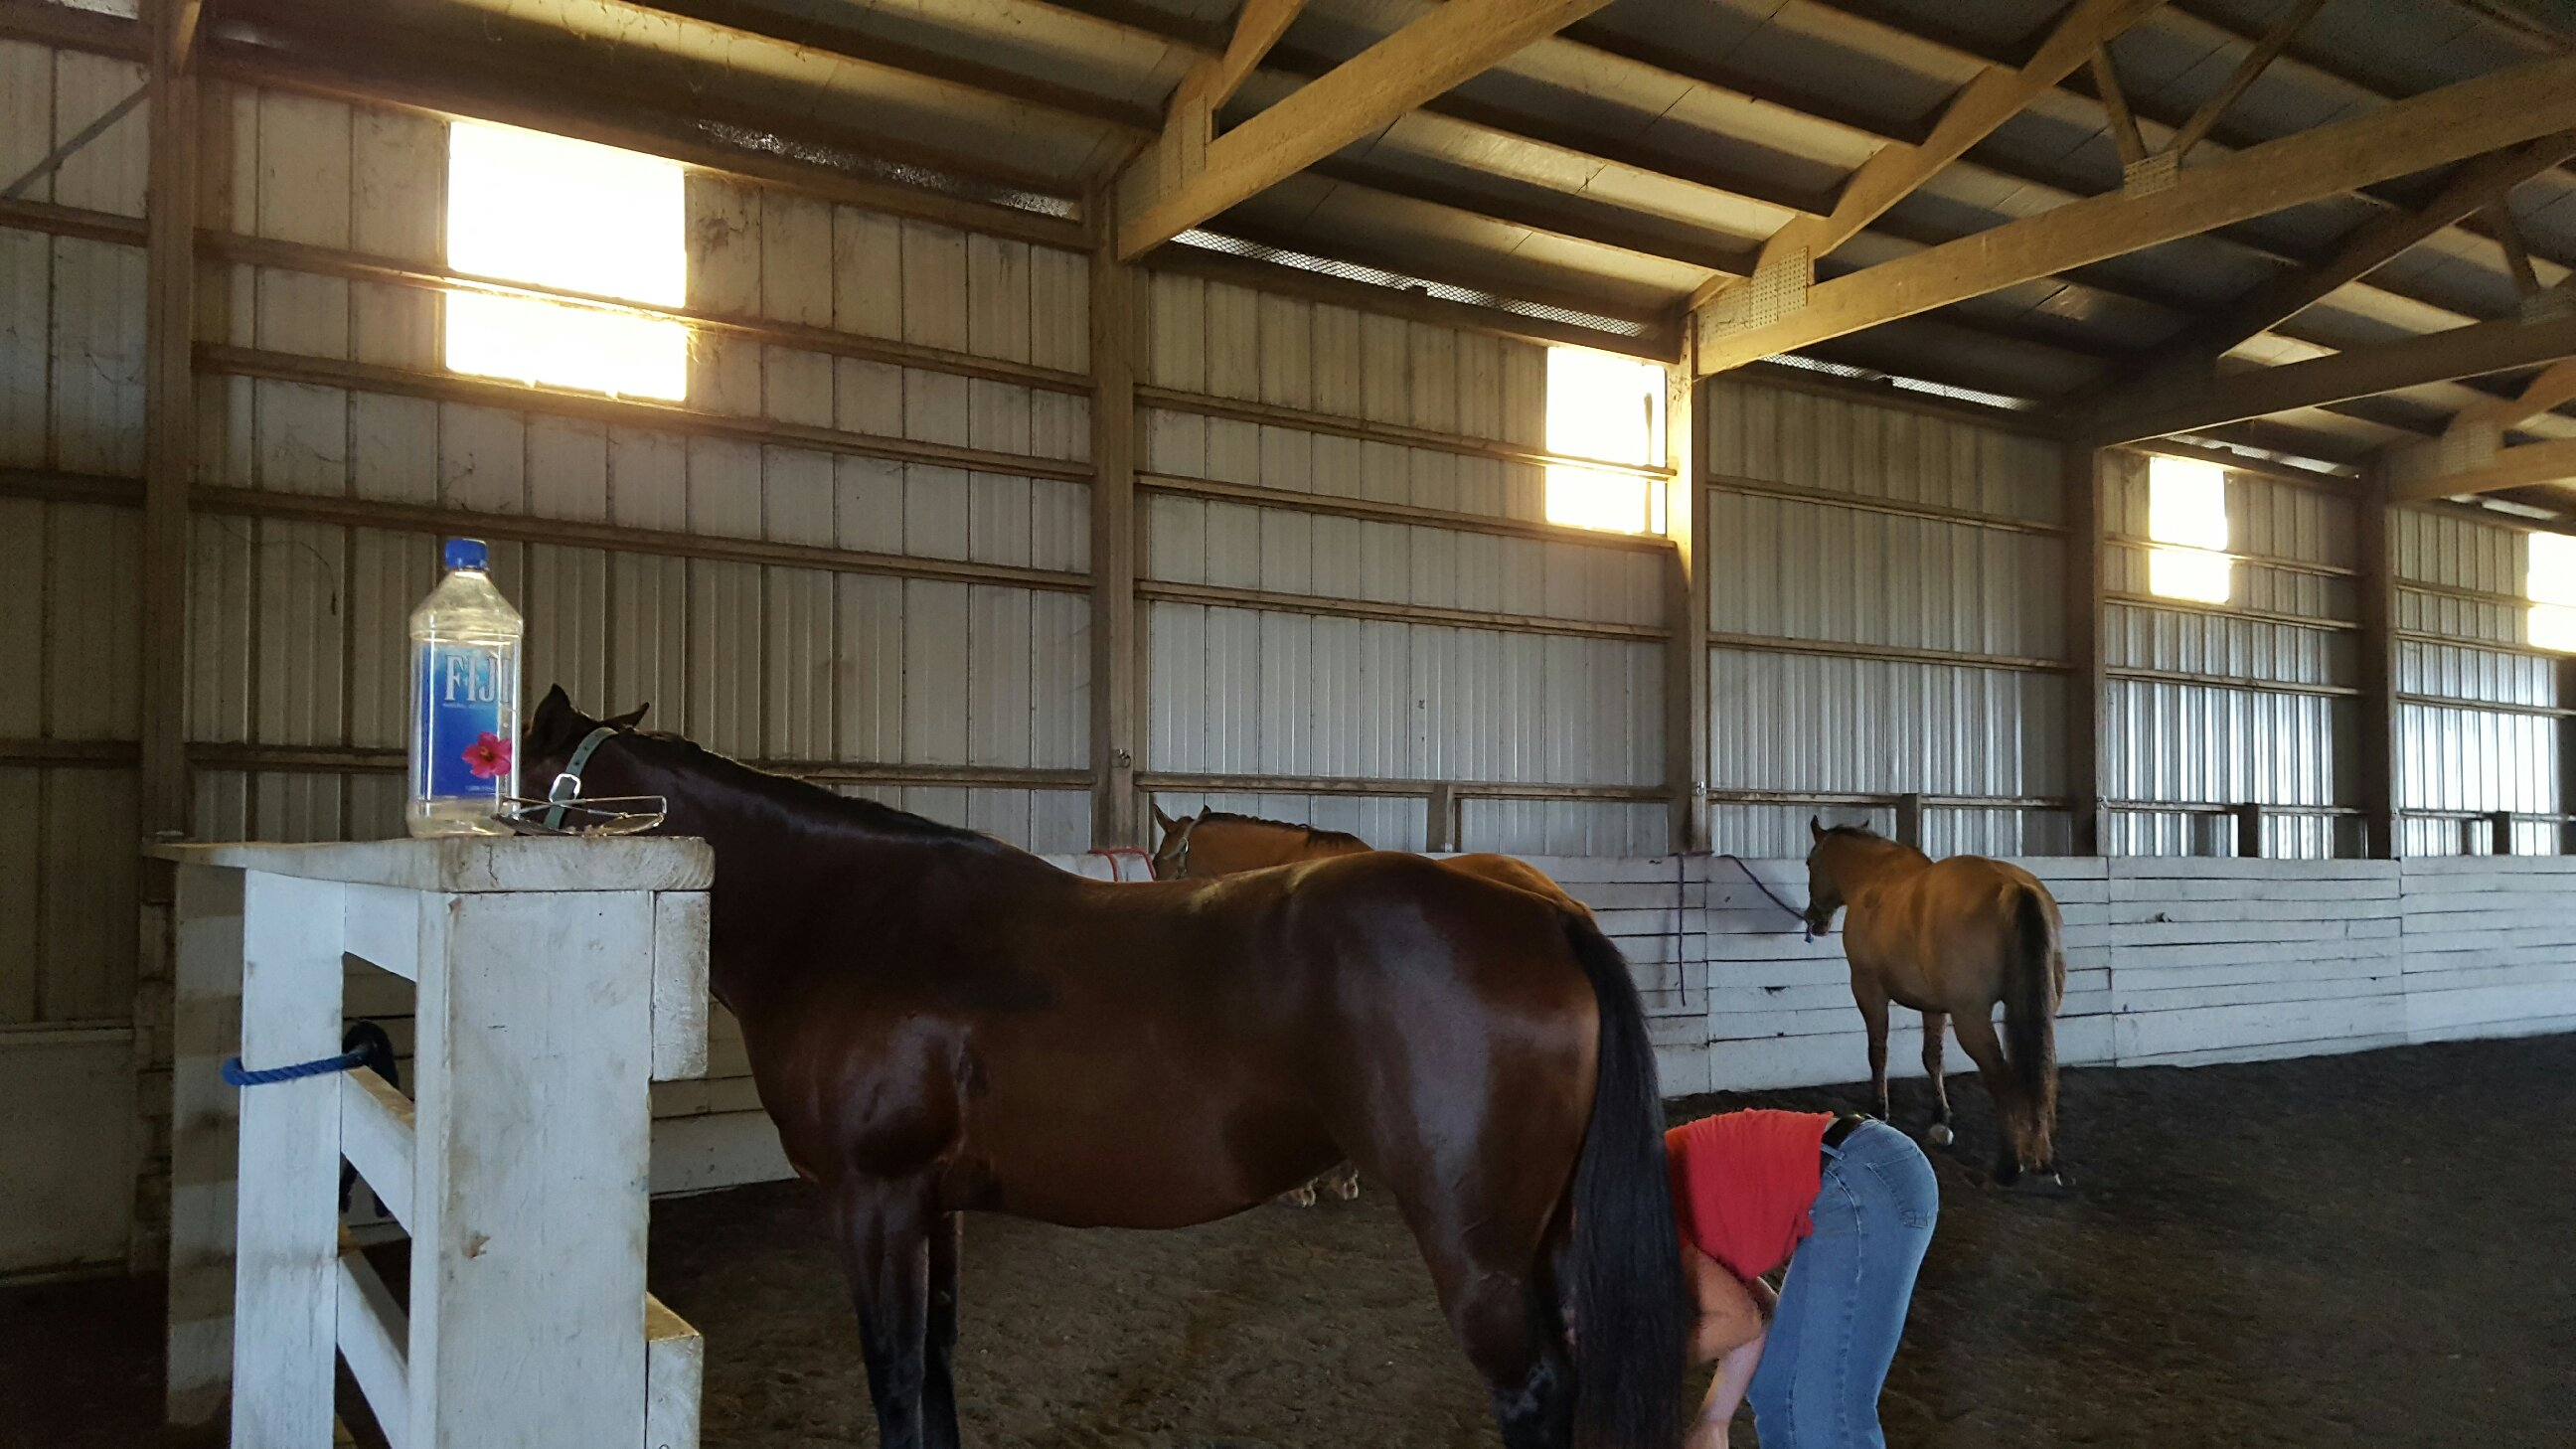 Horse equine physical therapy - Horses Take A Break At The University Farm After A Riding Session Some Of The